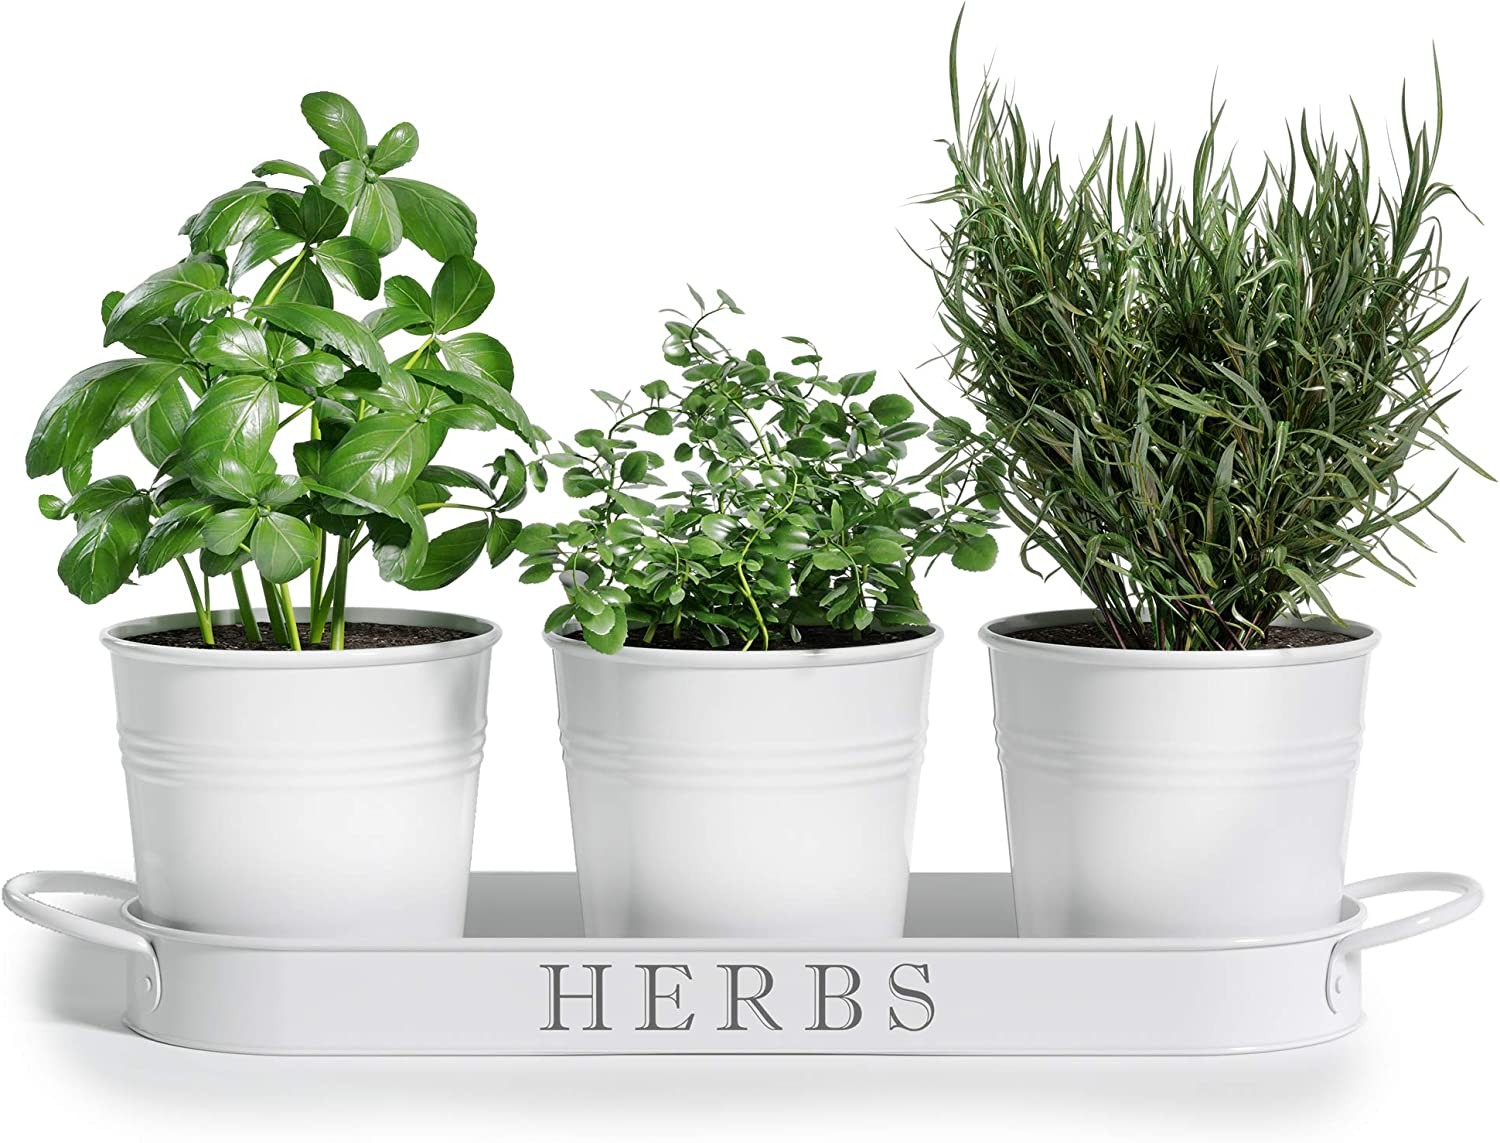 Buy Barnyard Designs Herb Pot Planter Set with Tray for Indoor ...